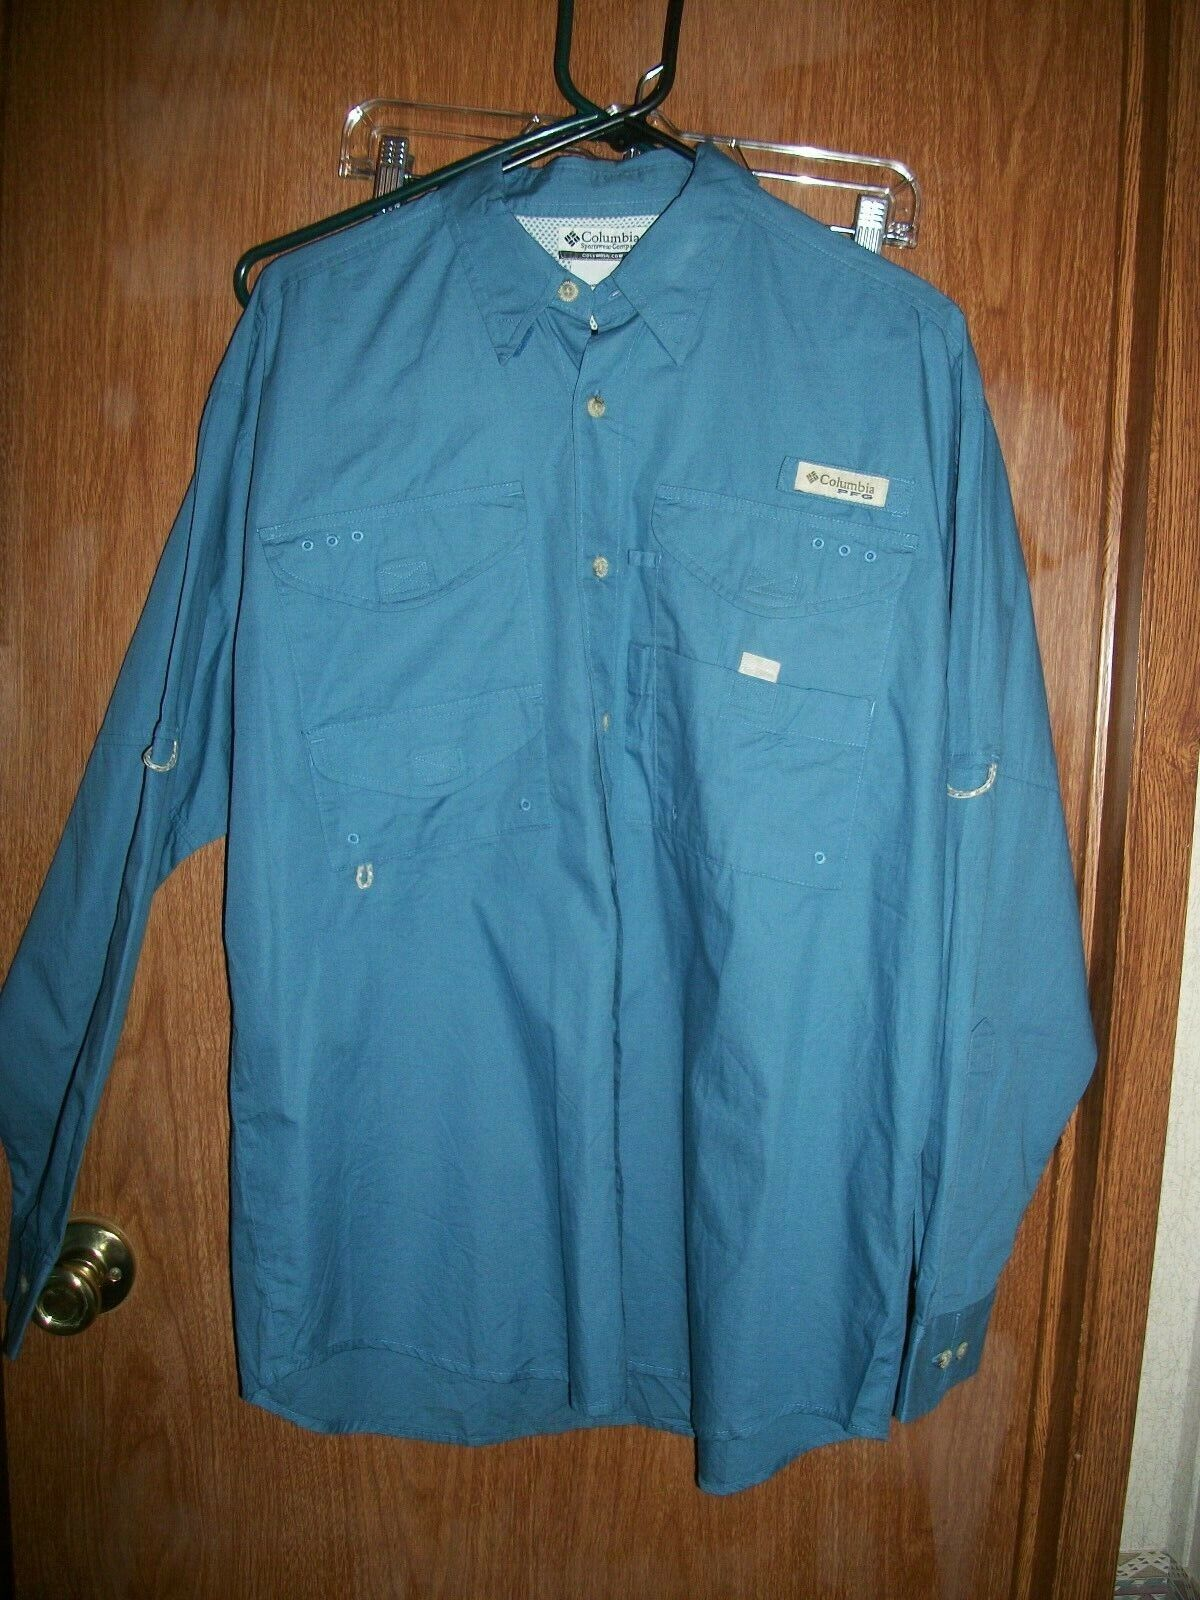 NWT COLUMBIA PFG MEDIUM blueE BONEHEAD BUTTON FRONT  FISHING SHIRT SZ SMALL   95.  guaranteed